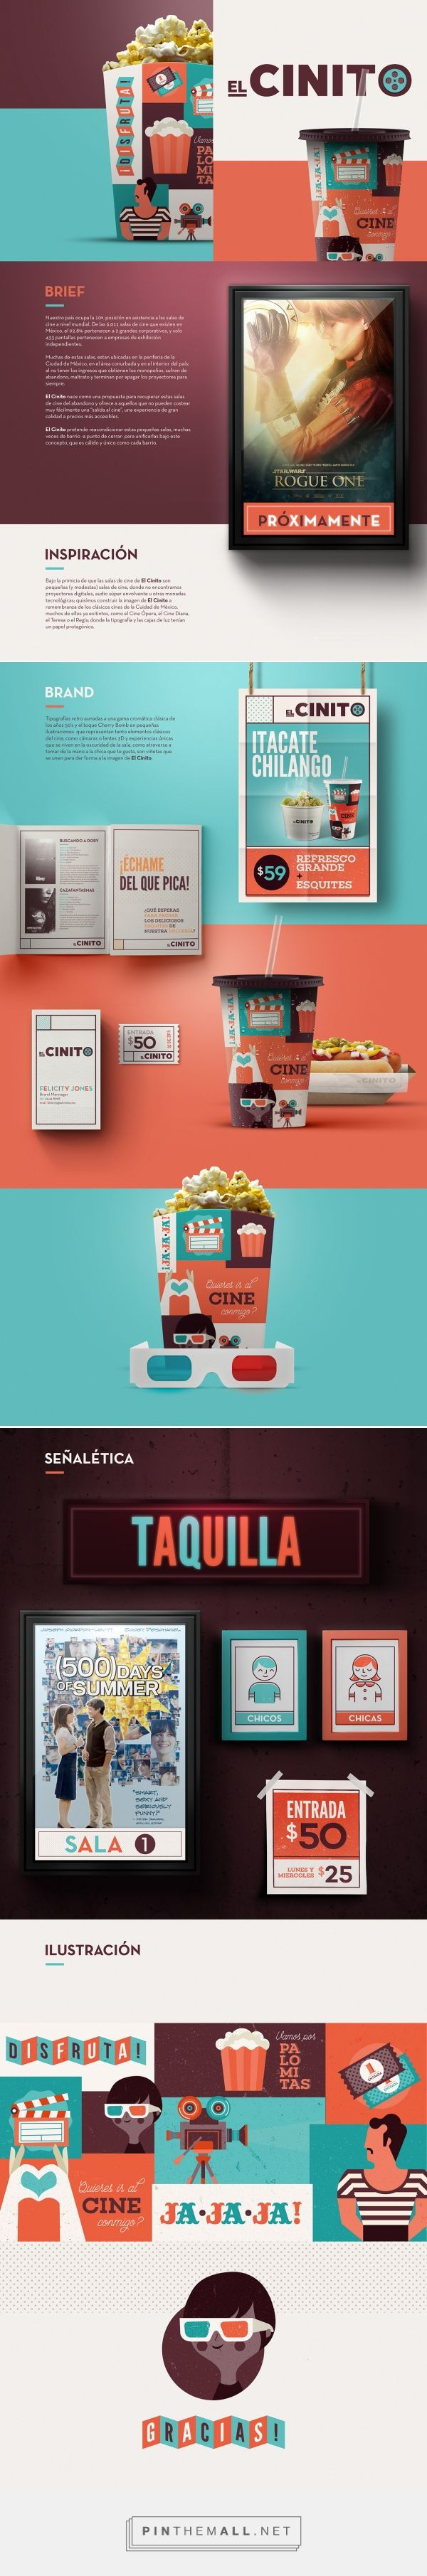 Graphic design, branding and packaging for El Cinito on Behance curated by…